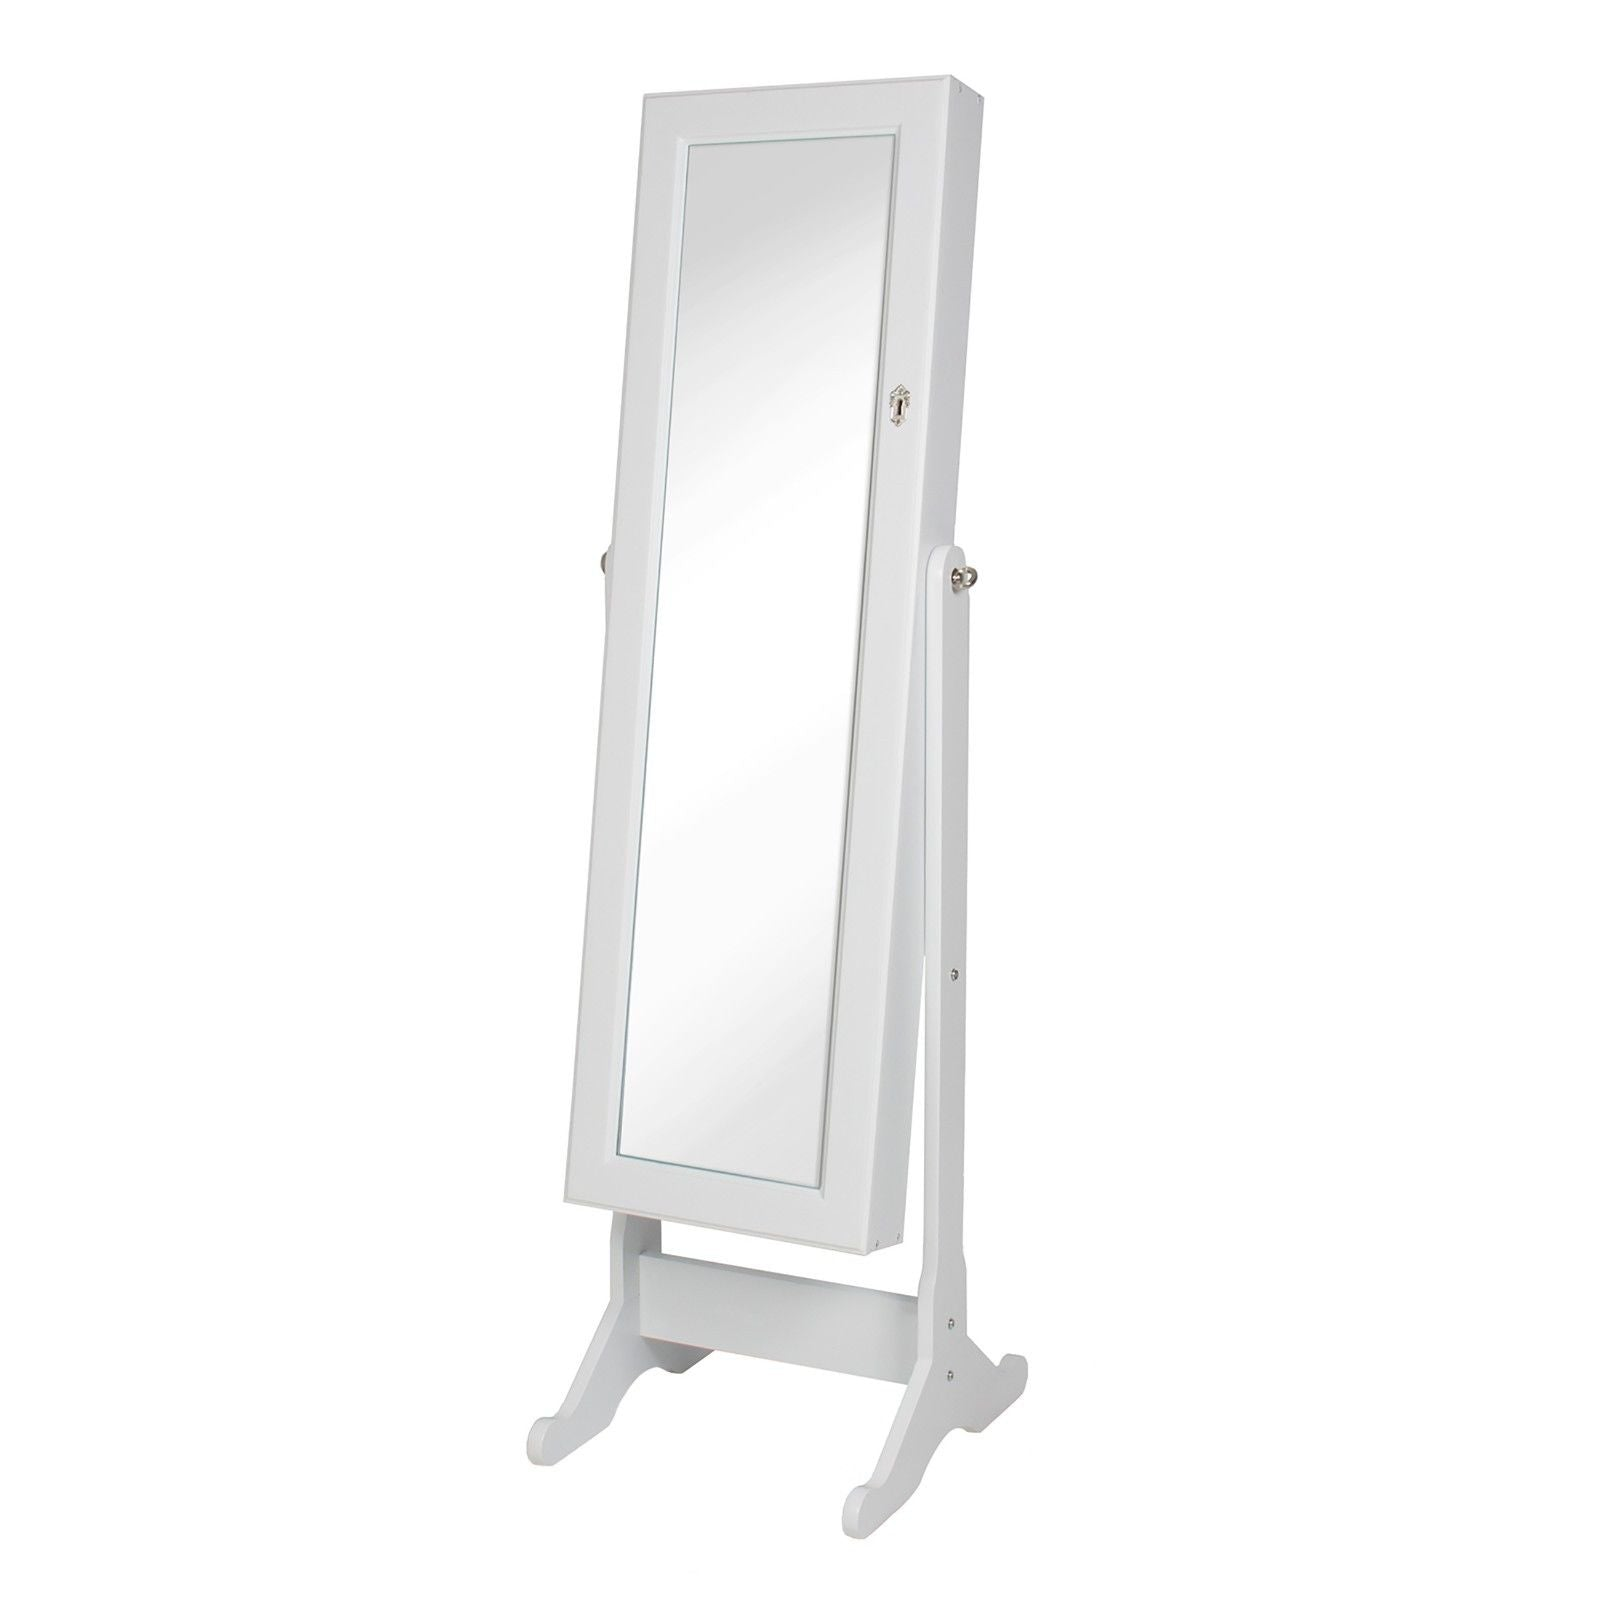 Lavender Modern Large Standing Floor Mirror with Jewelry Storage Cabinet 3 Color